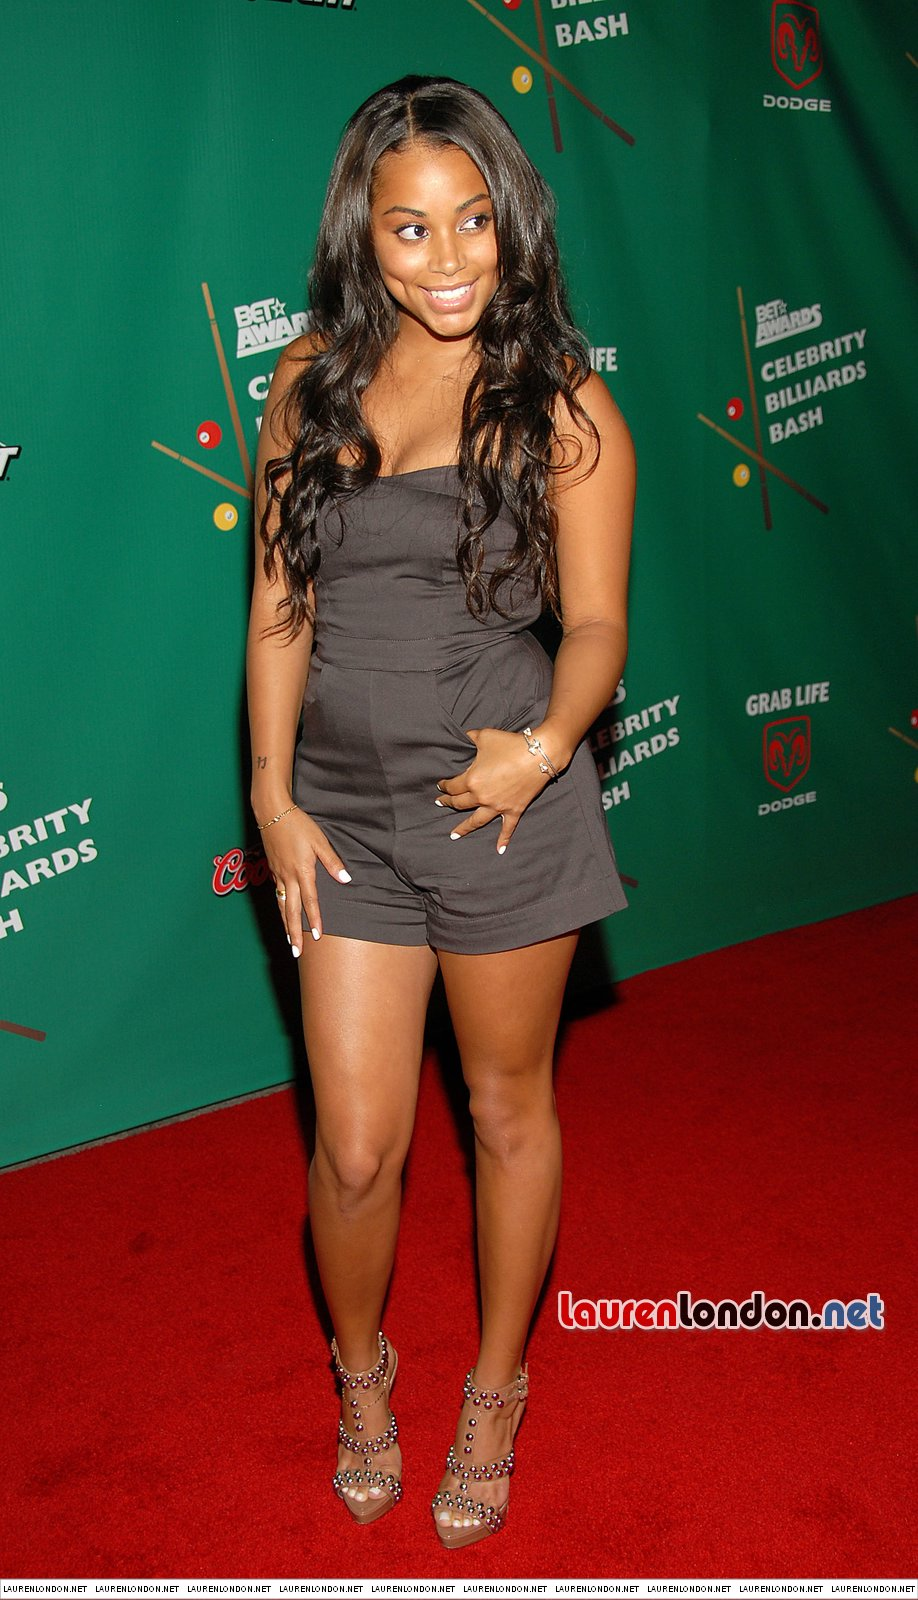 Who is lauren london dating in Melbourne